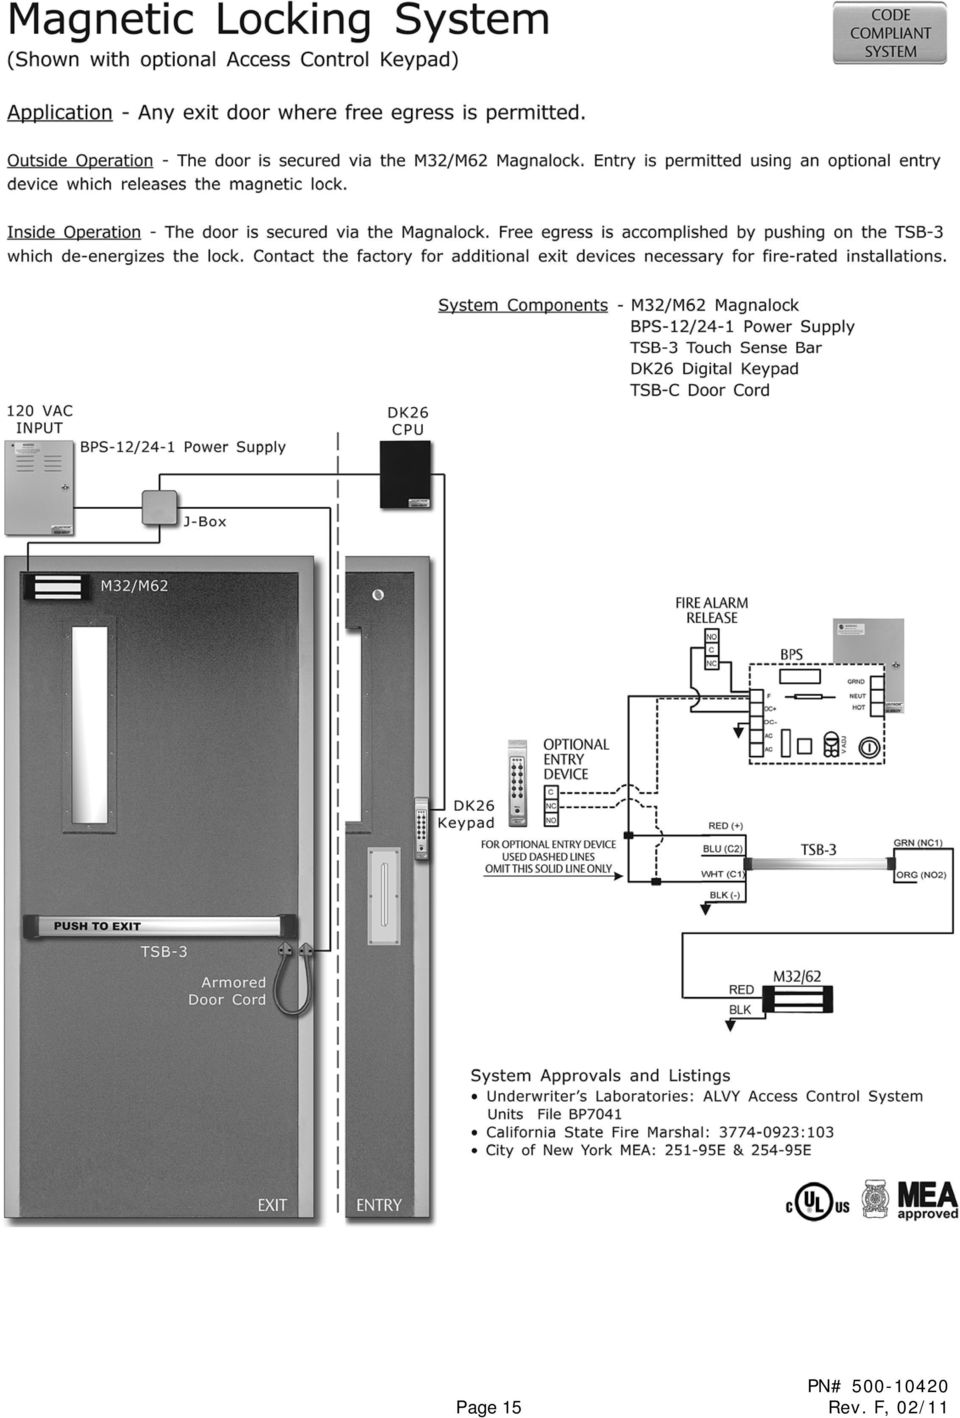 Diagram Electric Door Strike Kit On Wiring Diagram For Electric Kes on lighting diagrams, electric plug diagrams, welding diagrams, water diagrams, engineering diagrams, safety diagrams, electric transformers diagrams, electric circuit diagrams, electric generator diagrams, electric schematic diagrams, boilers diagrams, air conditioning diagrams, electric brakes diagrams, electric switch diagrams, battery diagrams, electric body, chemistry diagrams, hvac diagrams, electric drawings, electric blueprints,